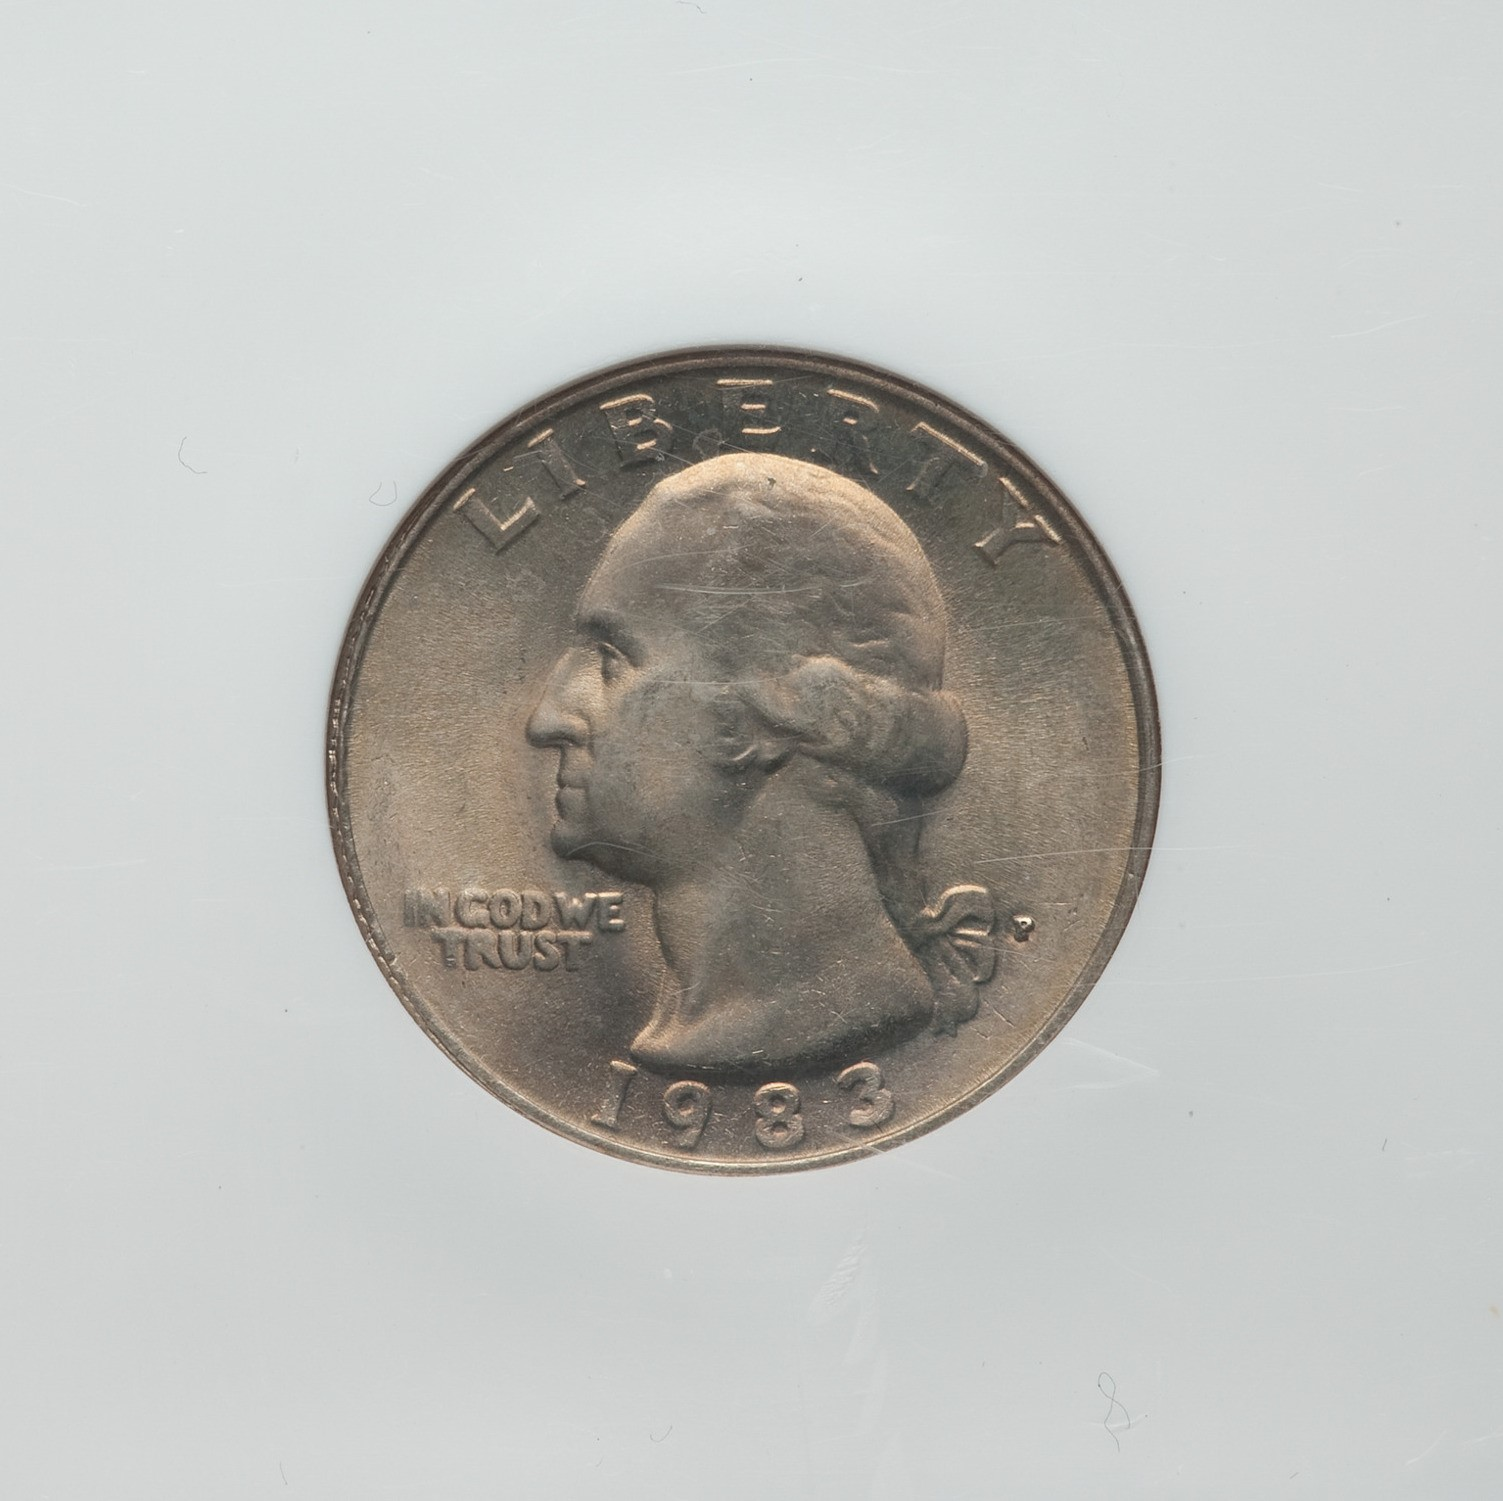 main image for Copper-Nickel Clad Quarters Making Collectors Glad? Here Are 4 Modern Quarters You Can Find In Circulation Worth More Than Face Value